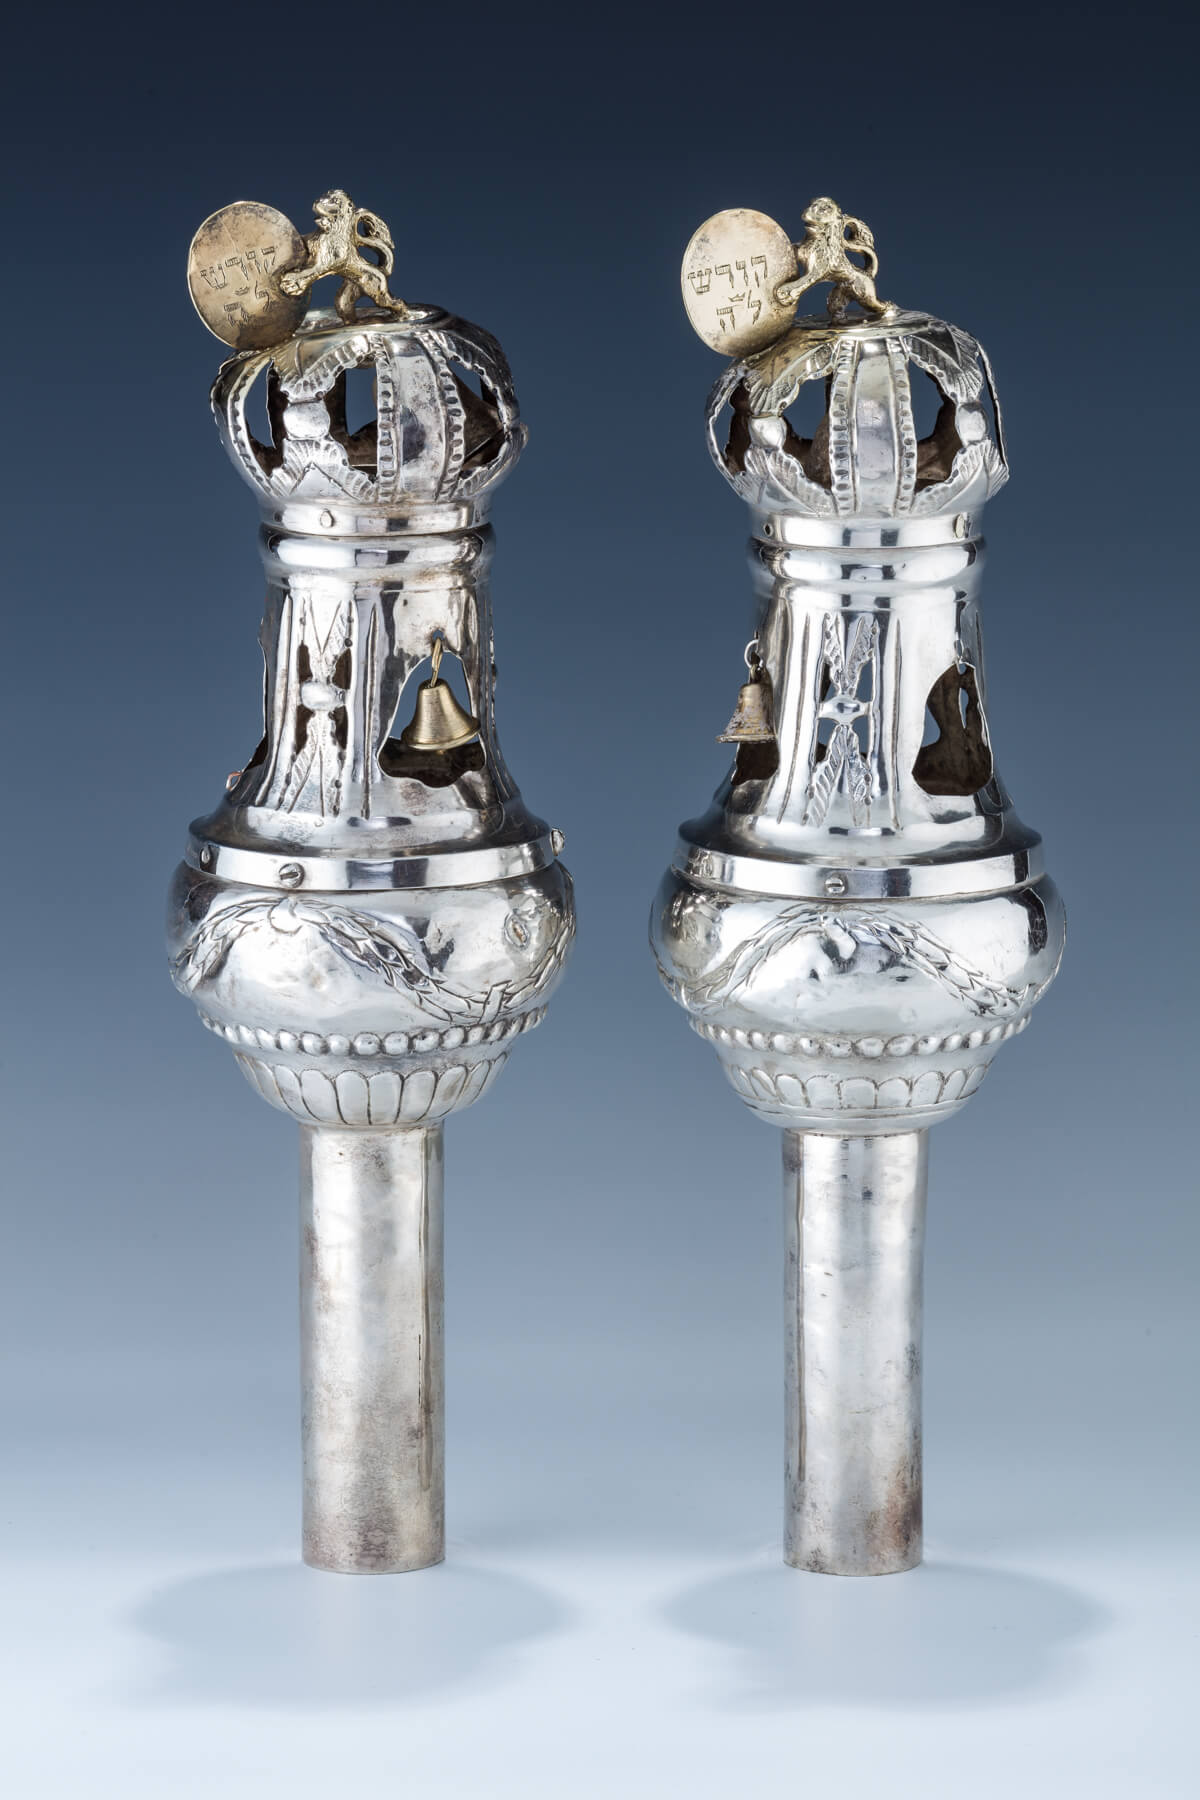 68. A Pair Of Silver Torah Finials By Johann Freidrich Ehe (1735 – 1808)